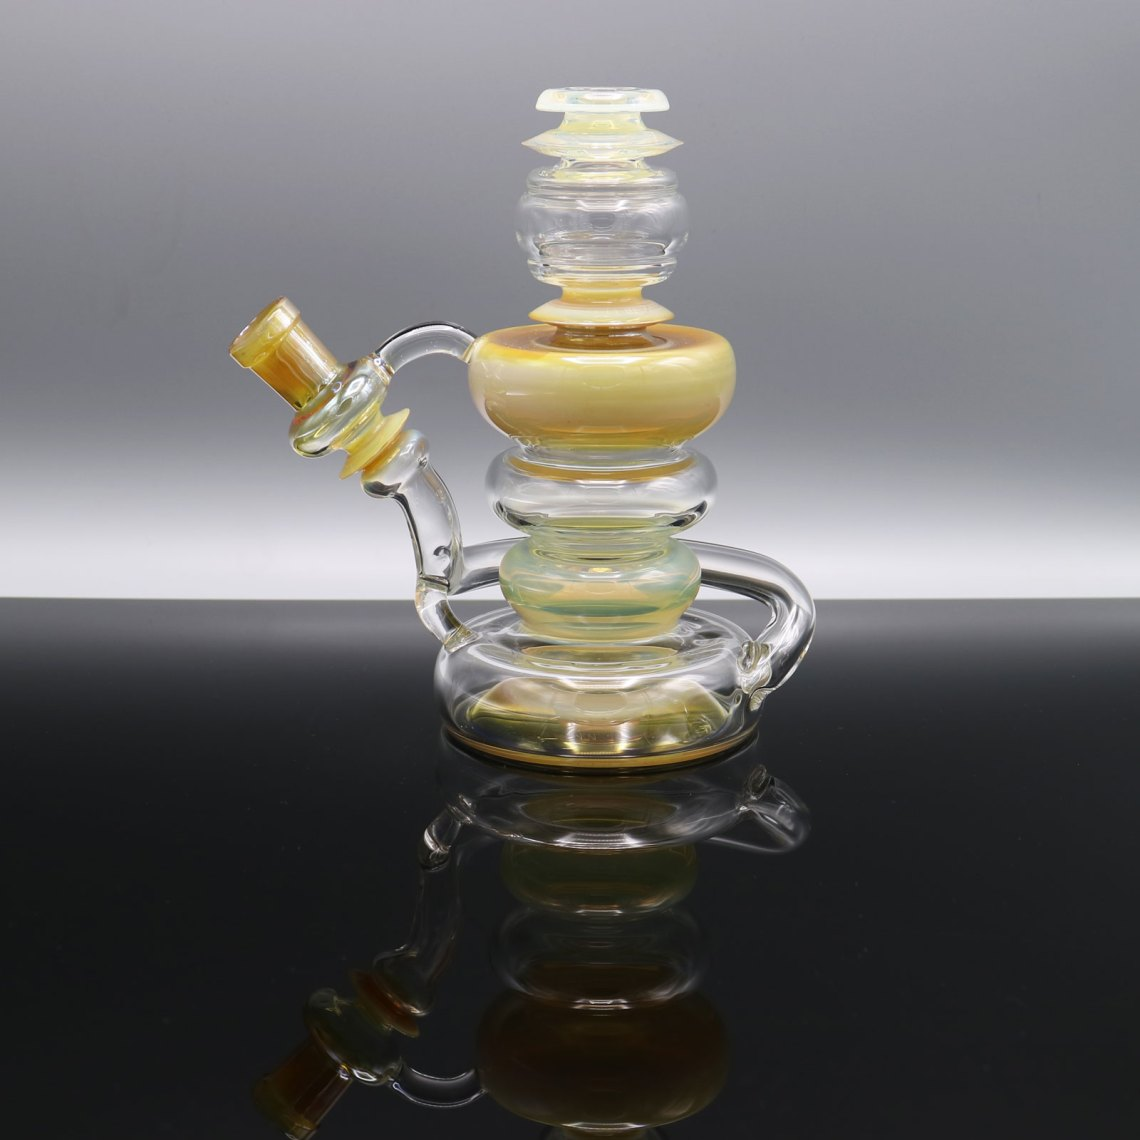 Mike Philpot – Full Size Fumed Spinnerjet